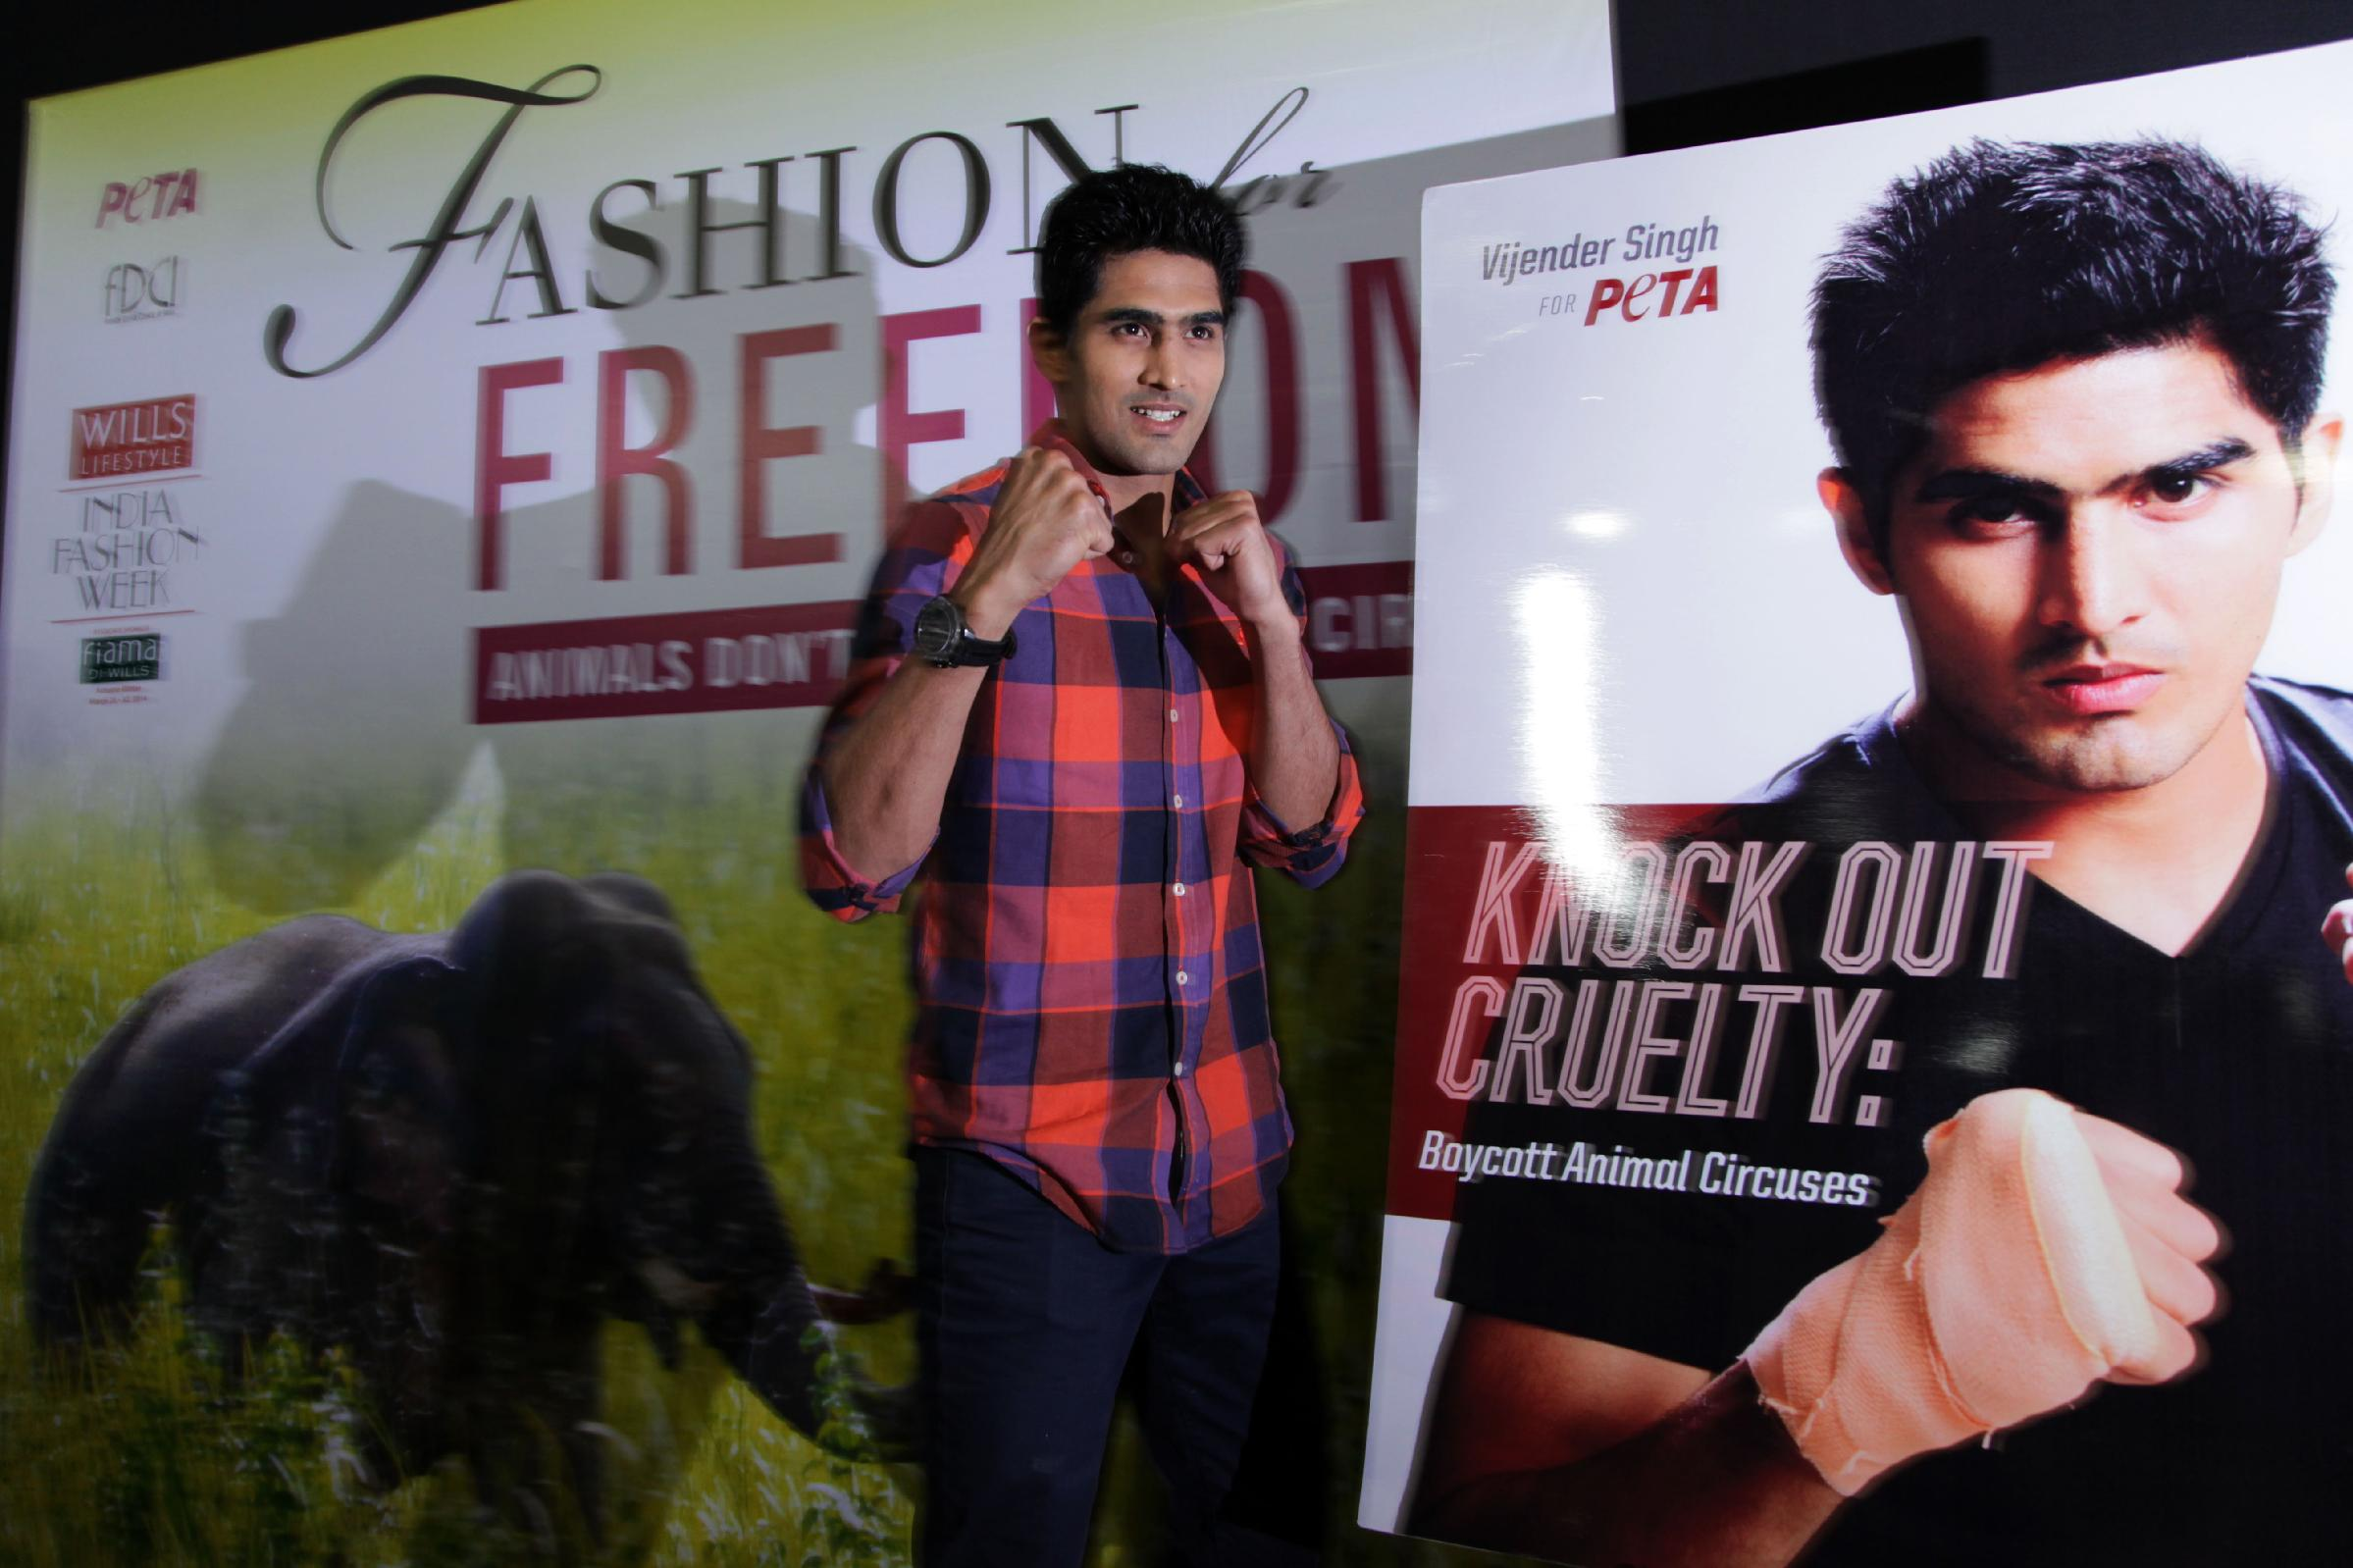 Indian boxer and Olympic medalist Vijender Singh poses during the launch of a campaign by People for the Ethical Treatment of Animals (PETA) and Wills Lifestyle India Fashion week in New Delhi, India, Friday, March 28, 2014. Singh is campaigning with PETA for the boycott of use of animals in circuses